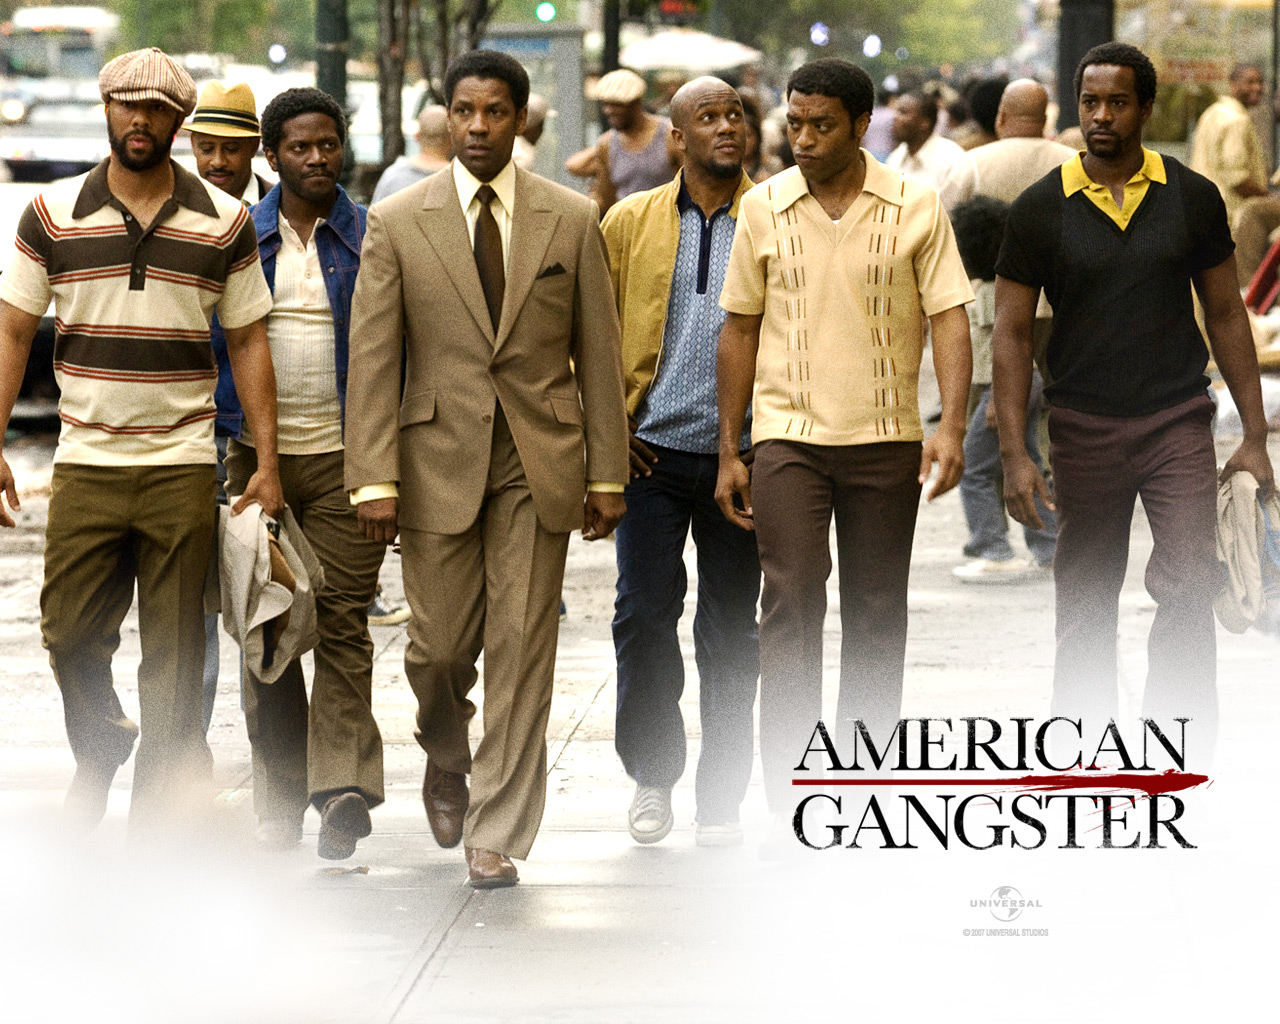 http://4.bp.blogspot.com/-a5HK85j6-1Y/TzcboAitYXI/AAAAAAAAAKE/BtT0rfCt0do/s1600/Denzel_Washington_in_American_Gangster_Wallpaper_5_1024.jpg